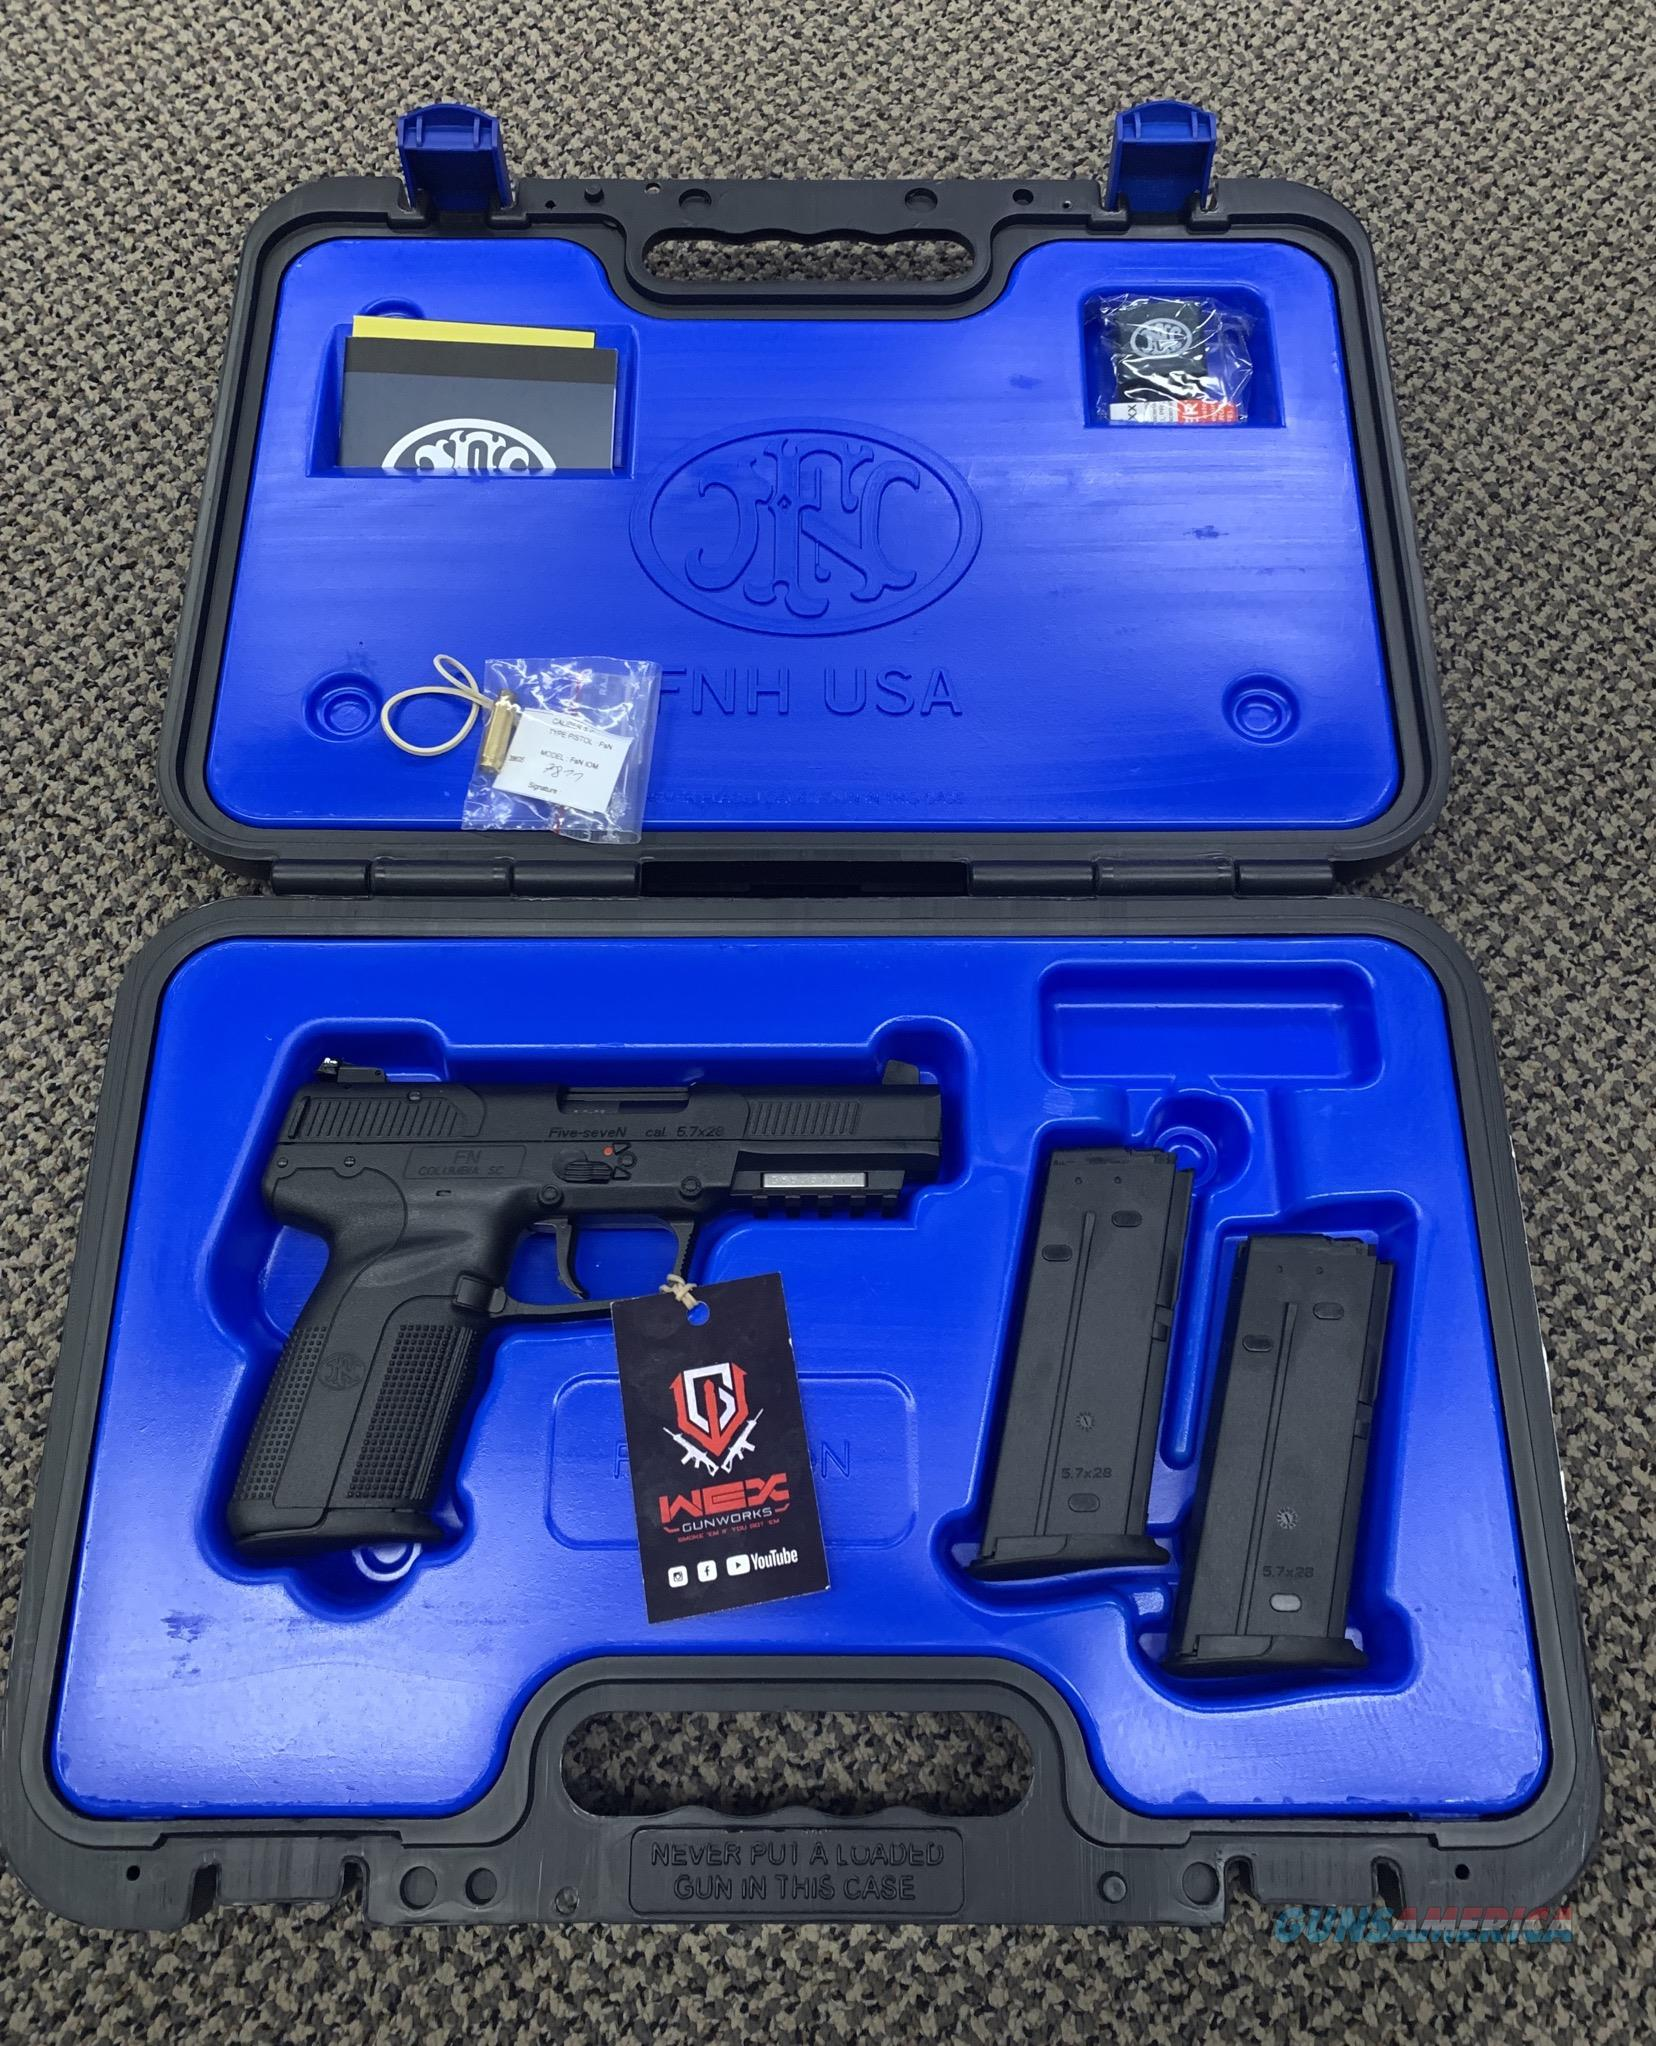 FN 5.7 PISTOL NEW IN BOX  Guns > Pistols > FNH - Fabrique Nationale (FN) Pistols > FiveSeven